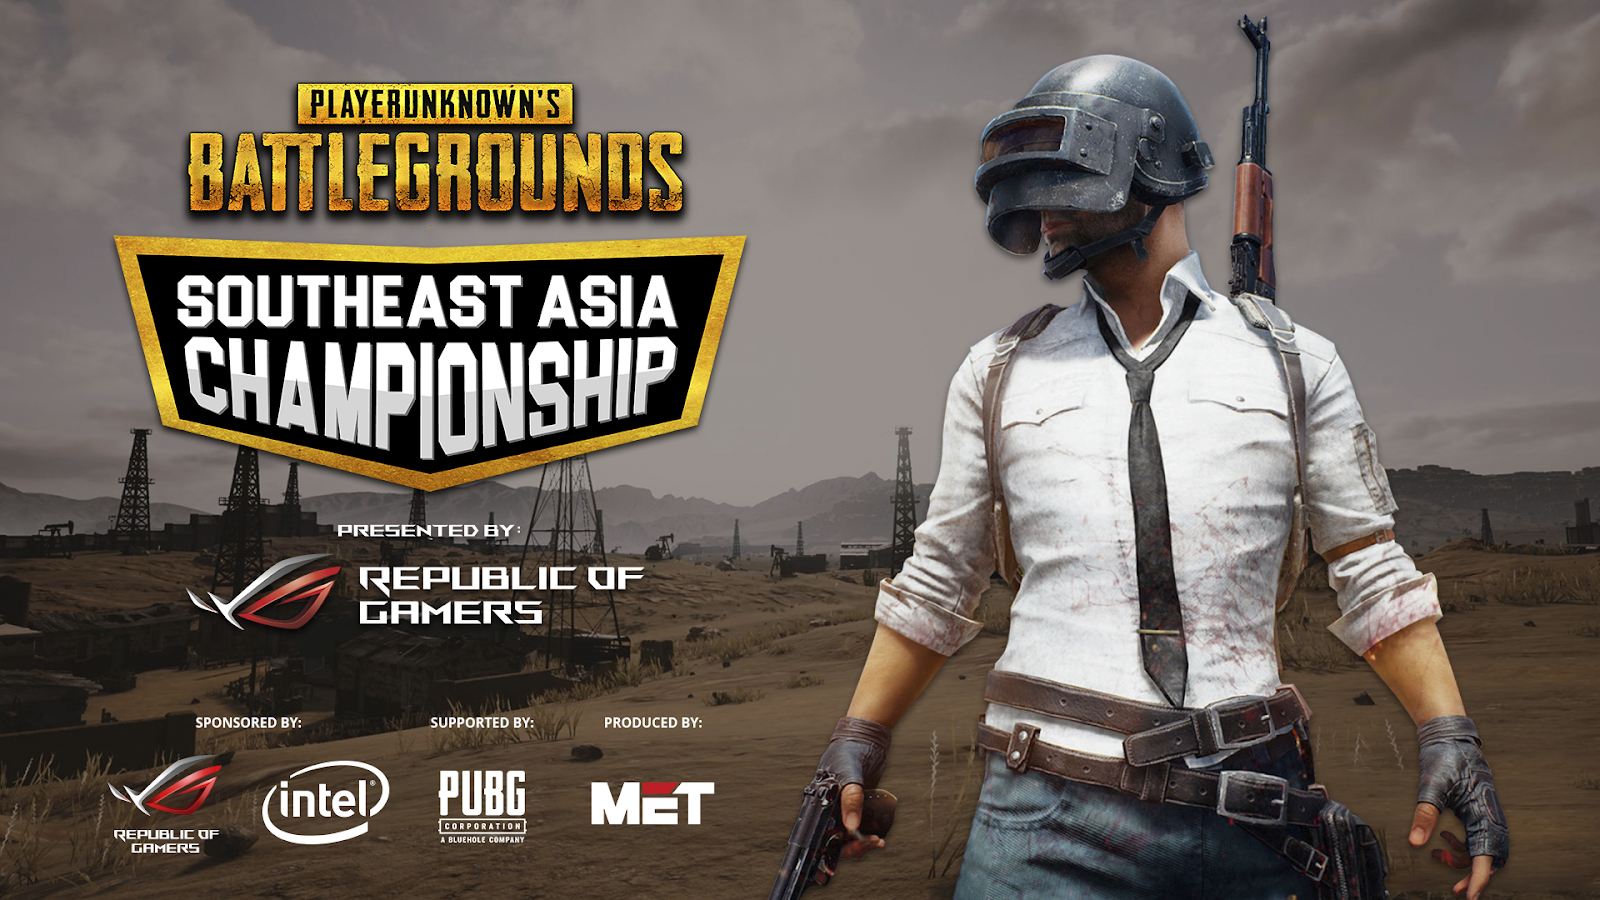 PUBG Has First Major ESports Tournament This July